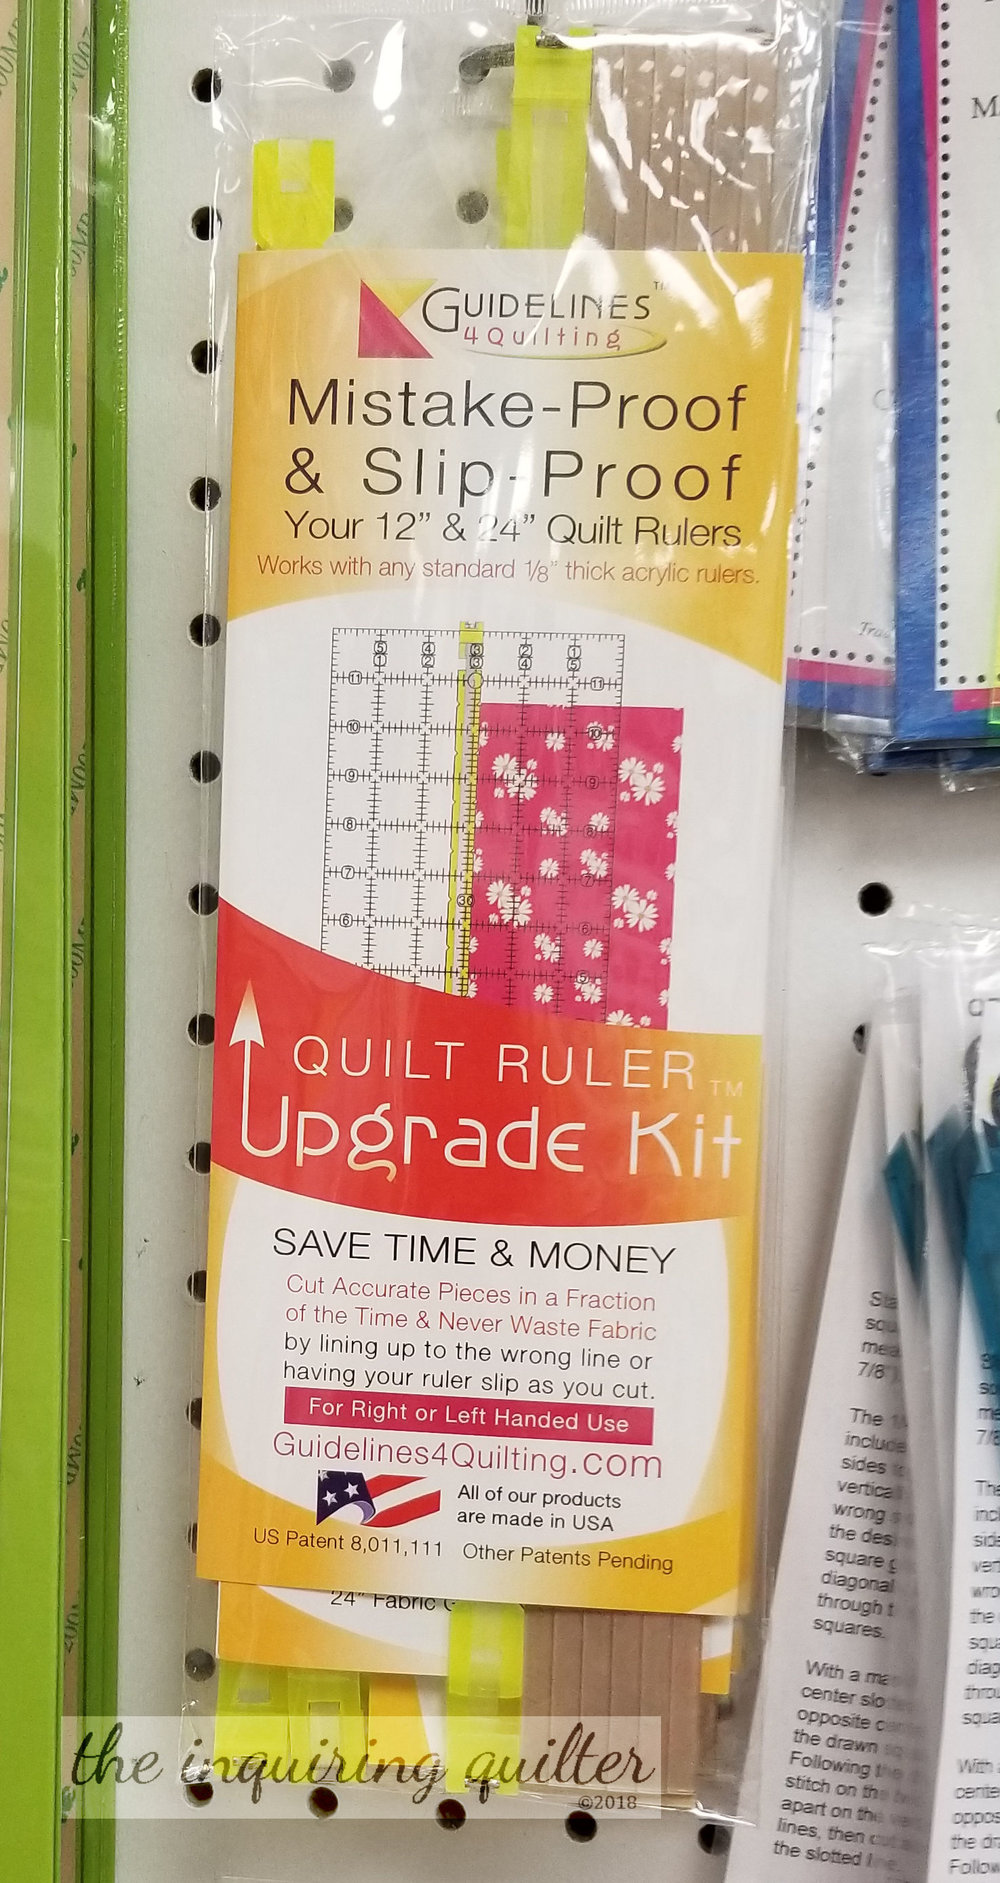 "Ever try to cut a bunch of 2-7/8"" squares? This gizmo hooks onto your ruler, providing not only a visual guide but an edge that perfectly aligns your fabric. Haven't tried it yet, but I think it's cool."